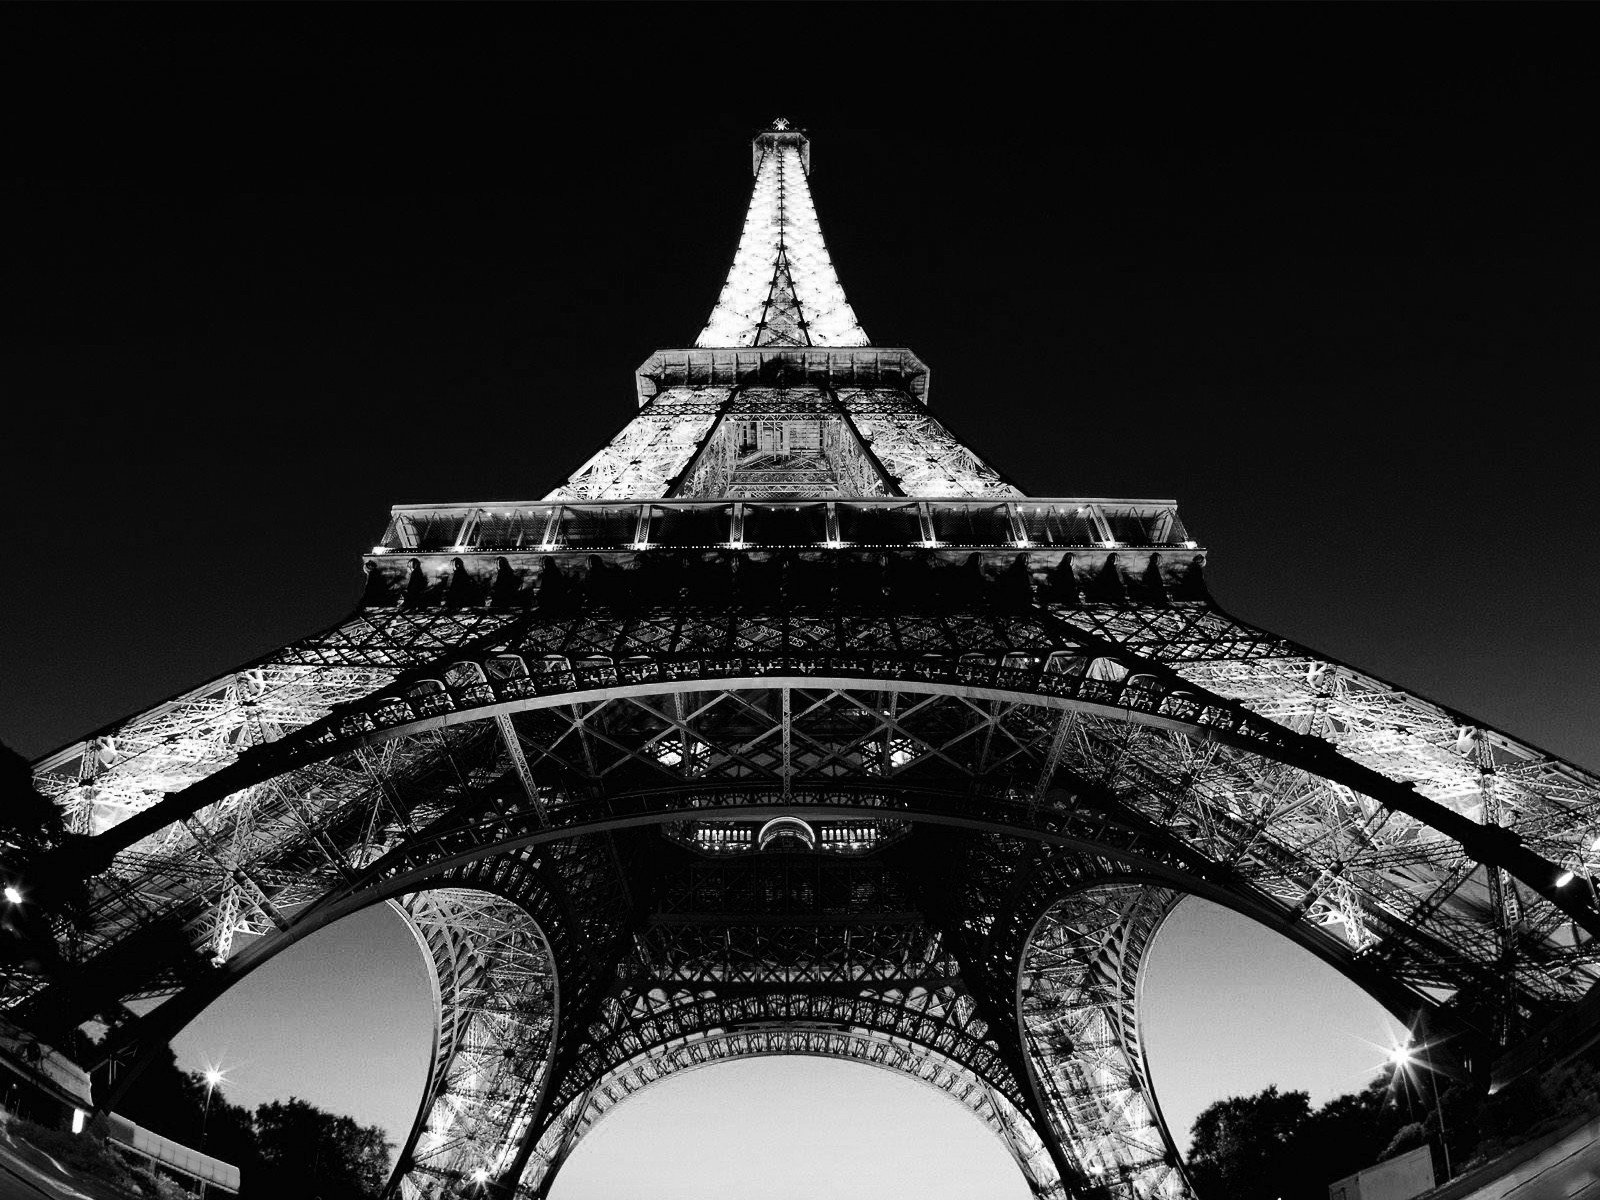 Eiffel Tower Images Black And White: Black, White, Eiffel Tower, Paris, France HD Wallpapers